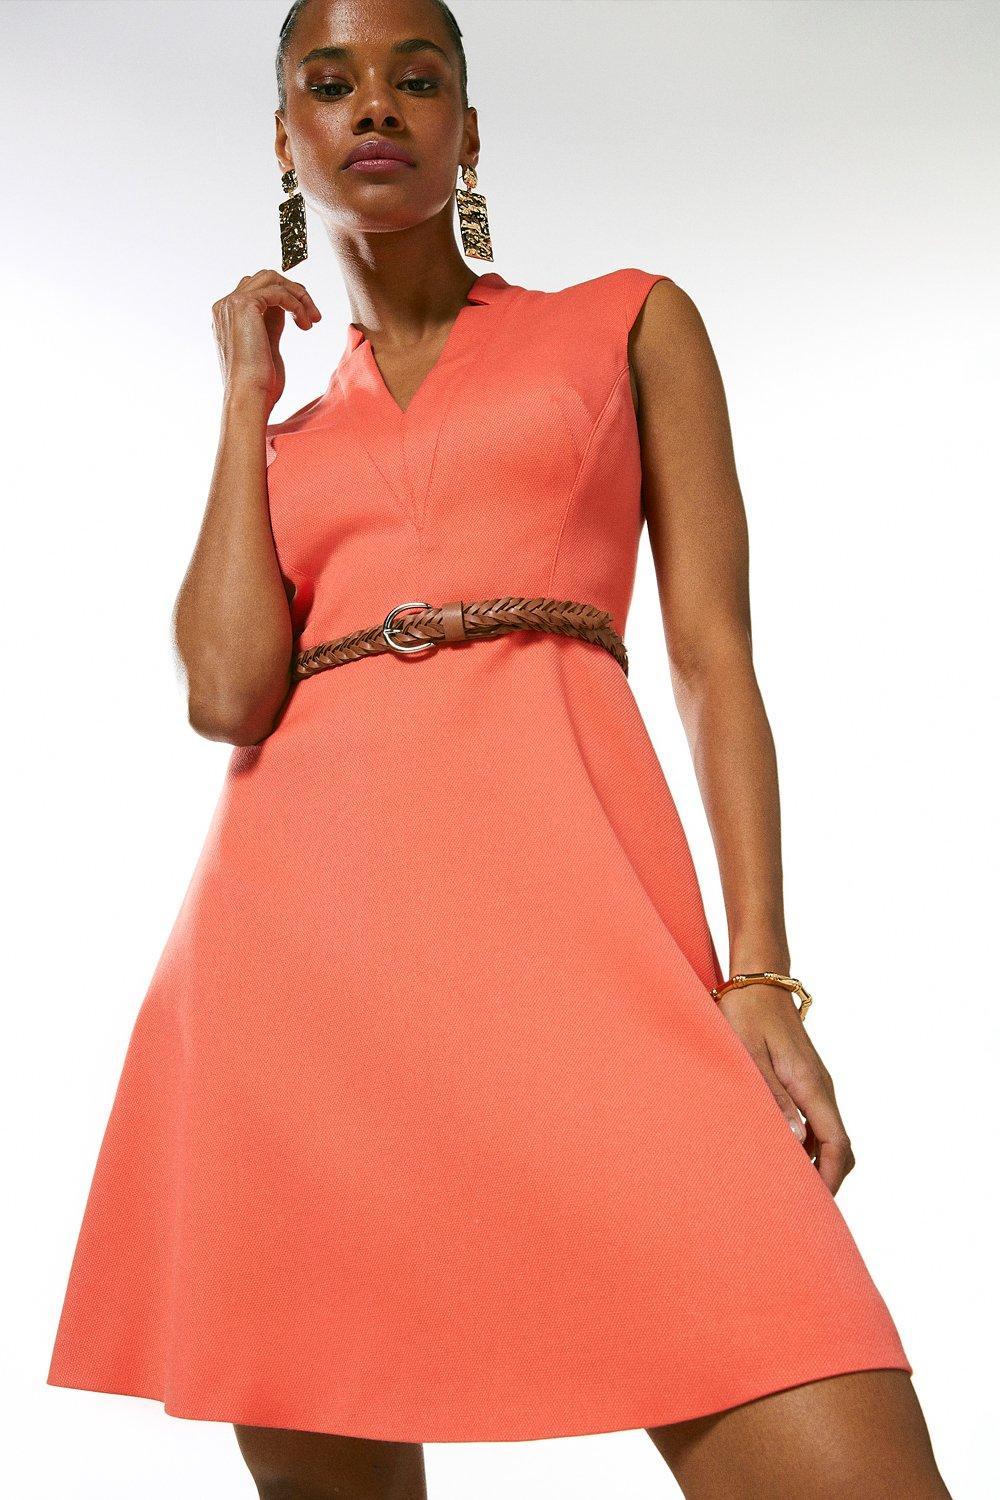 Relaxed Tailored Belted Dress https://www.karenmillen.com/relaxed-tailored-belted-dress-/AKK01670.html Product code: AKK01670 Promotions UP TO 50% OFF EVERYTHING £179.00£107.00 COLOUR: CORAL